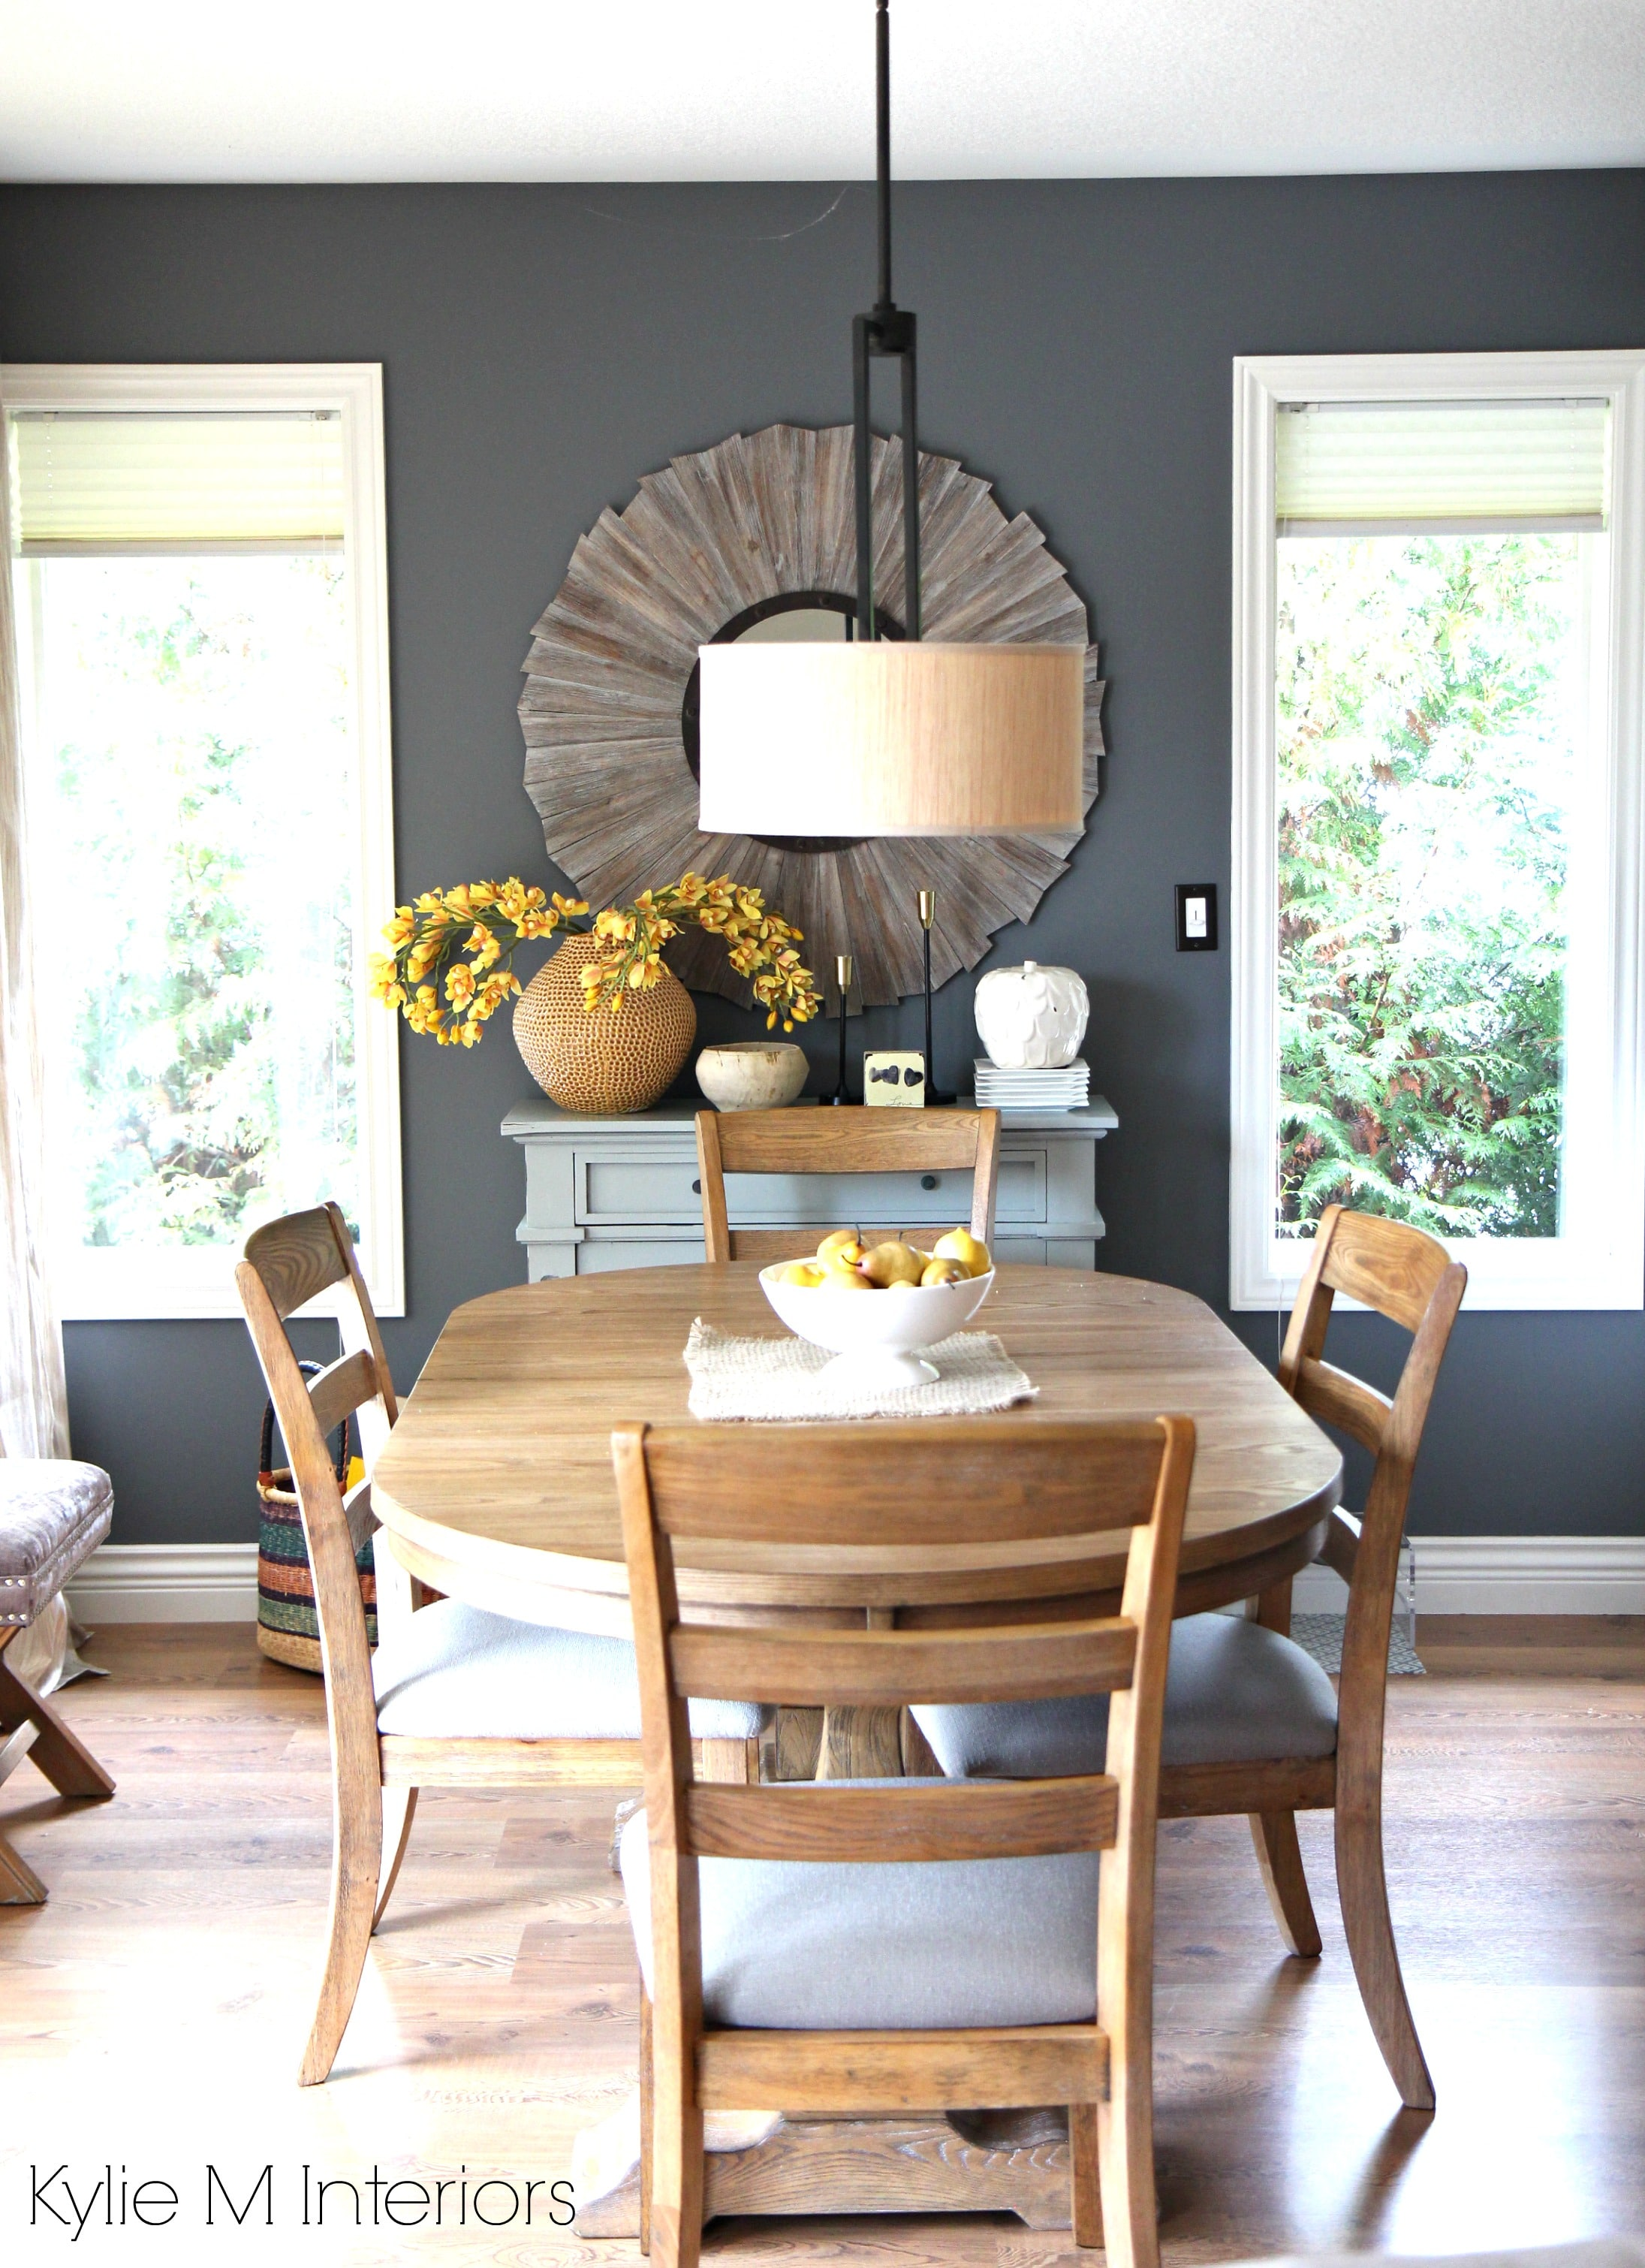 Modern Family Friendly Country Farmhouse Style Dining Room. Benjamin Moore  Gray With Blue And Purple Undertones And Warm Oak And Wood Tones With  Yellow And ...